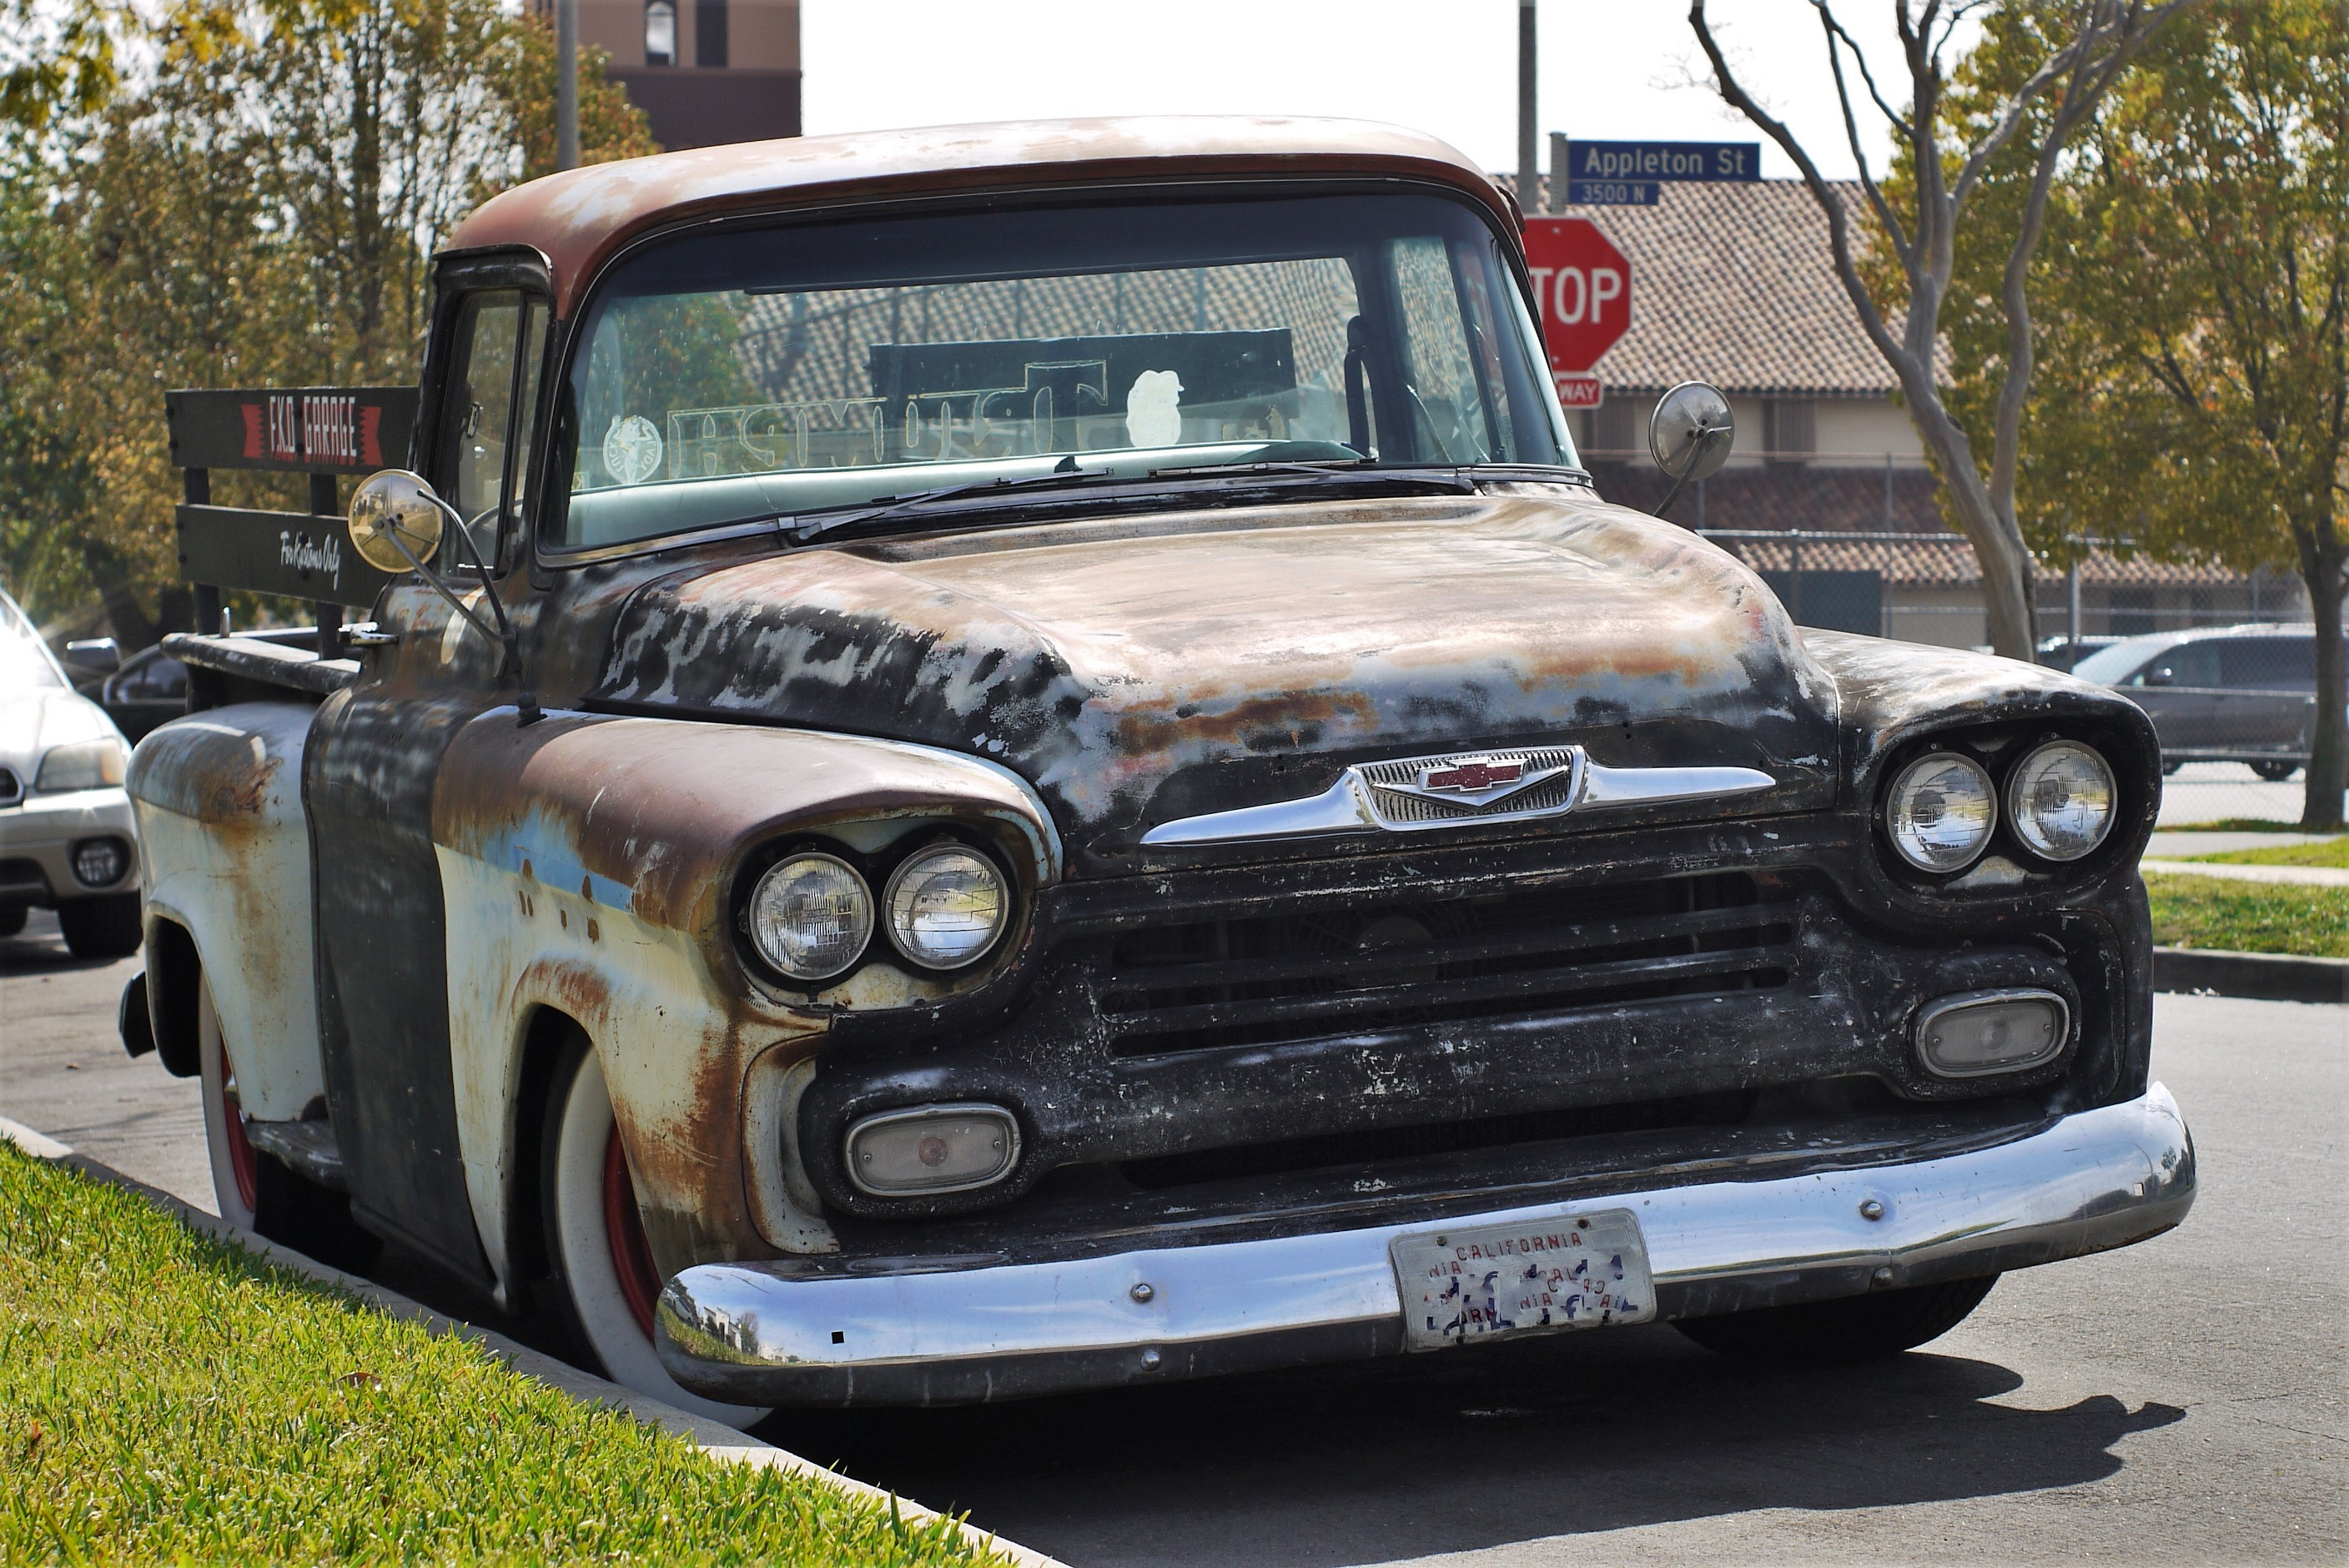 1958 Chevy Apache Pickup Truck - LA Car Spotting